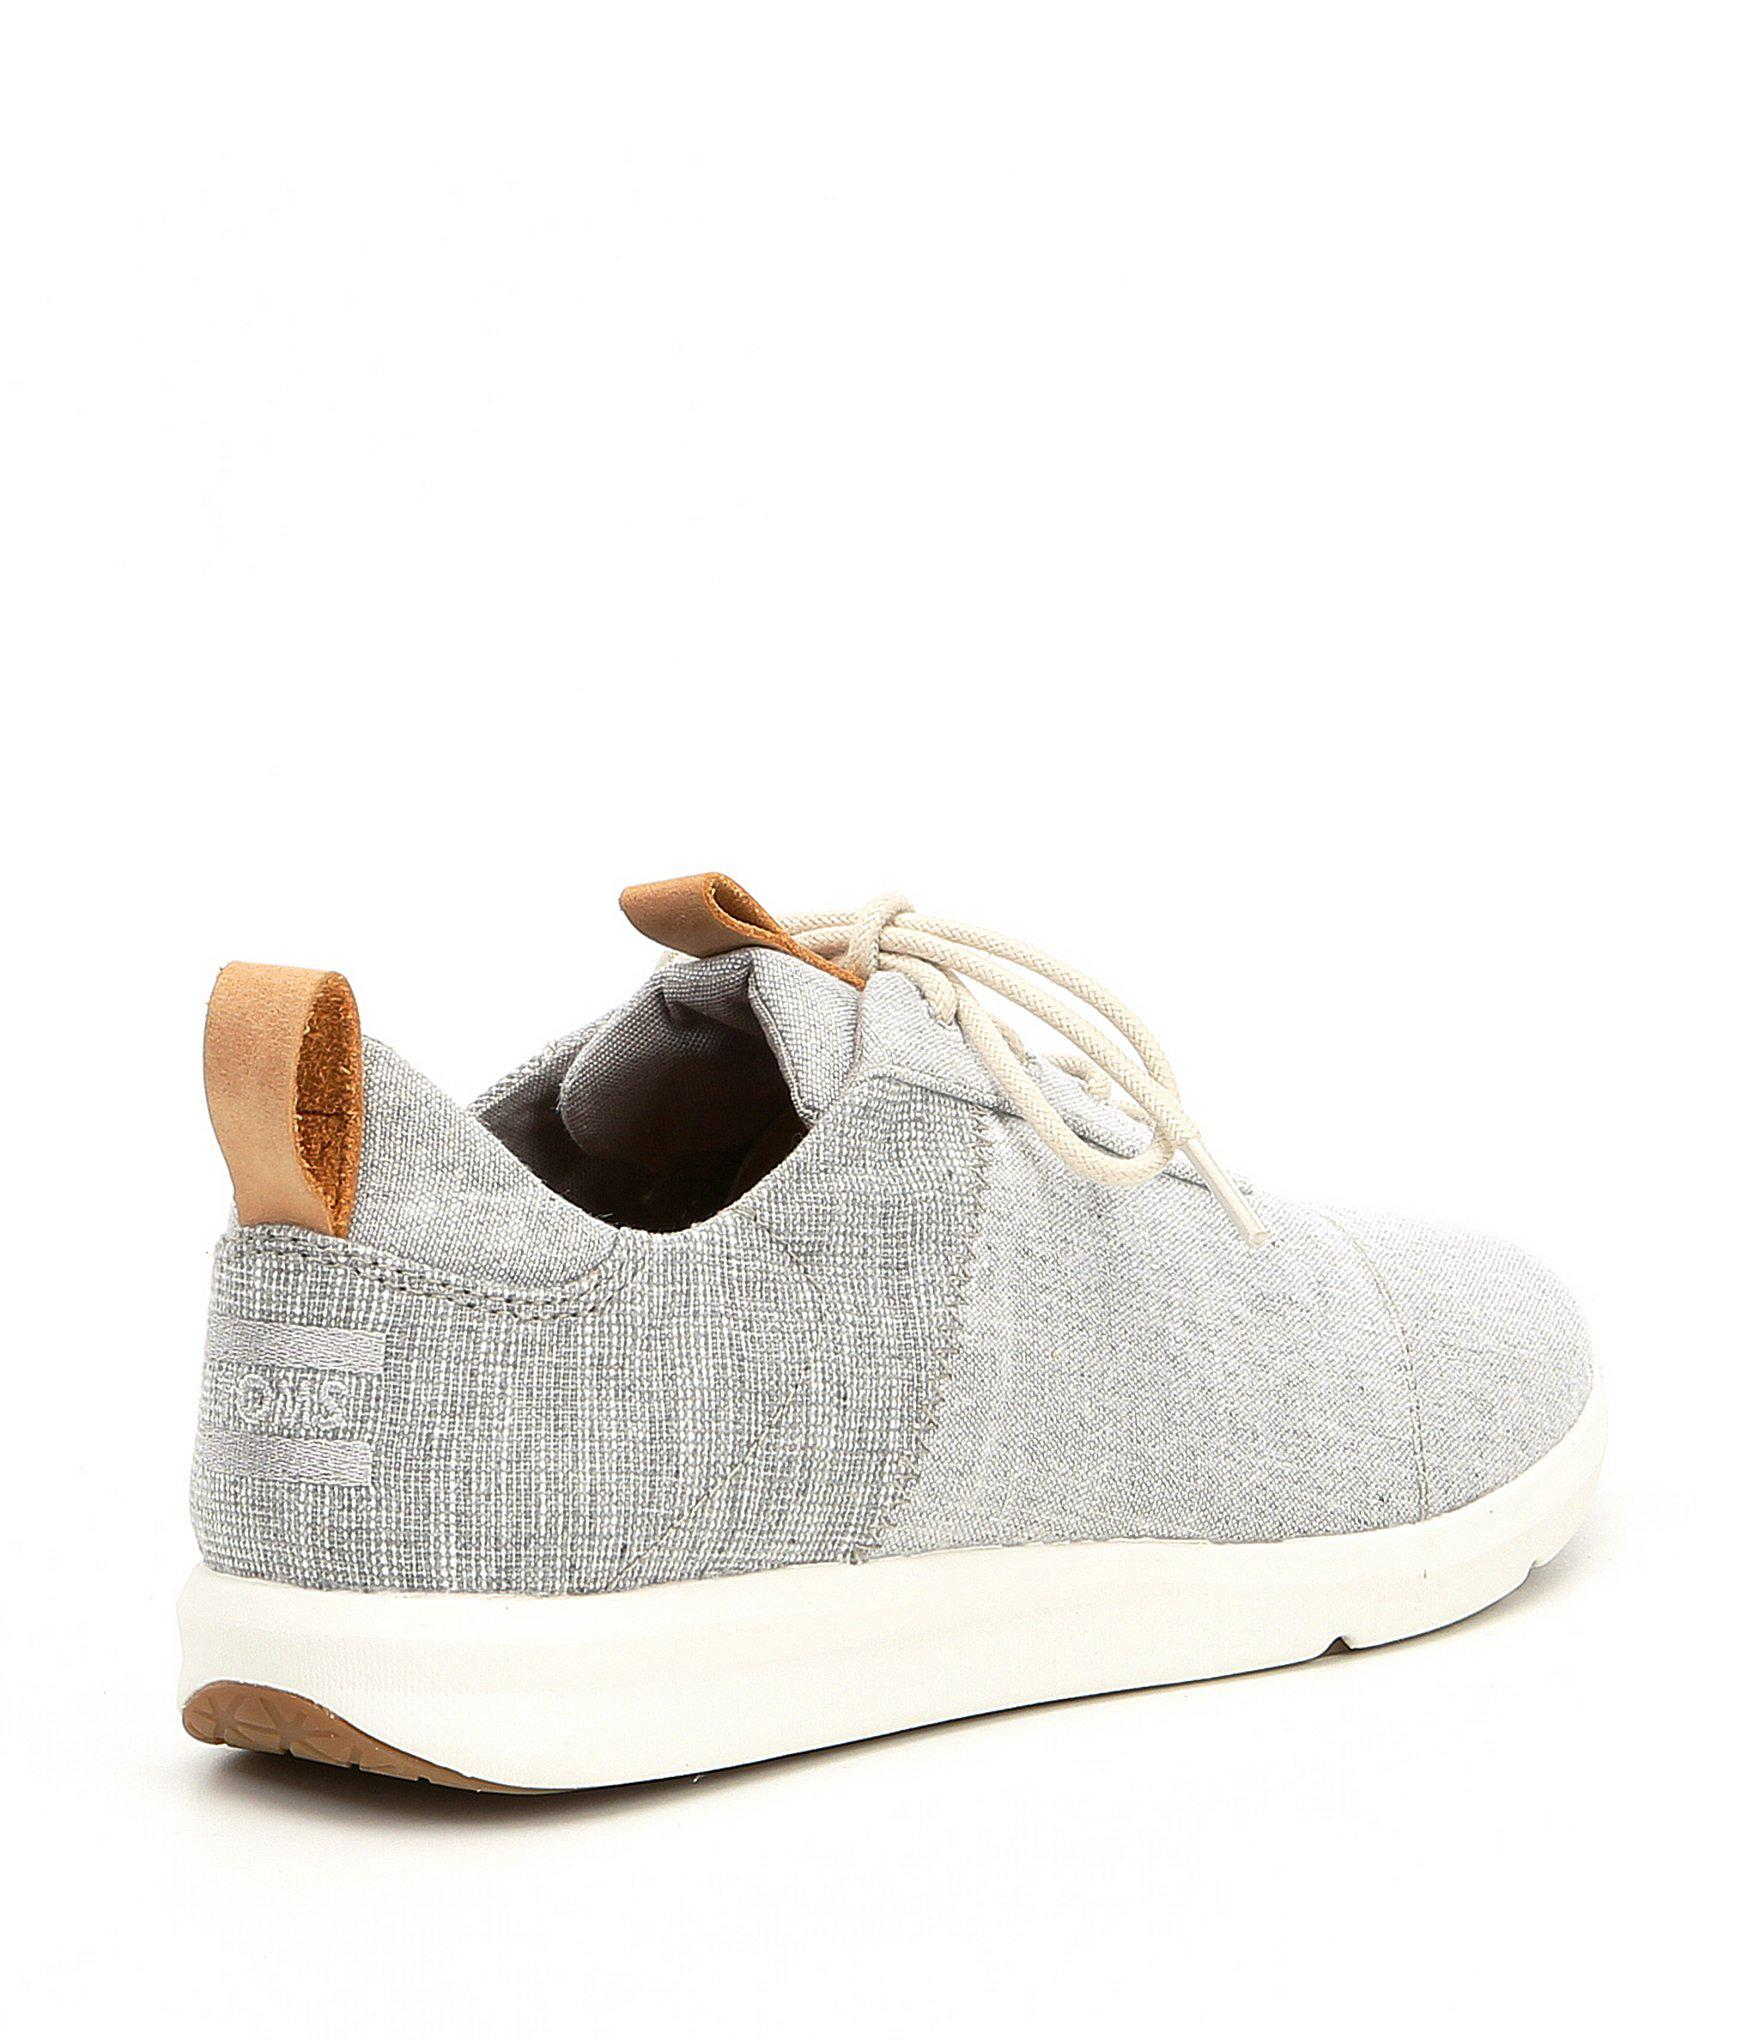 a3a29bf0009 TOMS - Gray Women s Cabrillo Chambray Sneakers - Lyst. View fullscreen